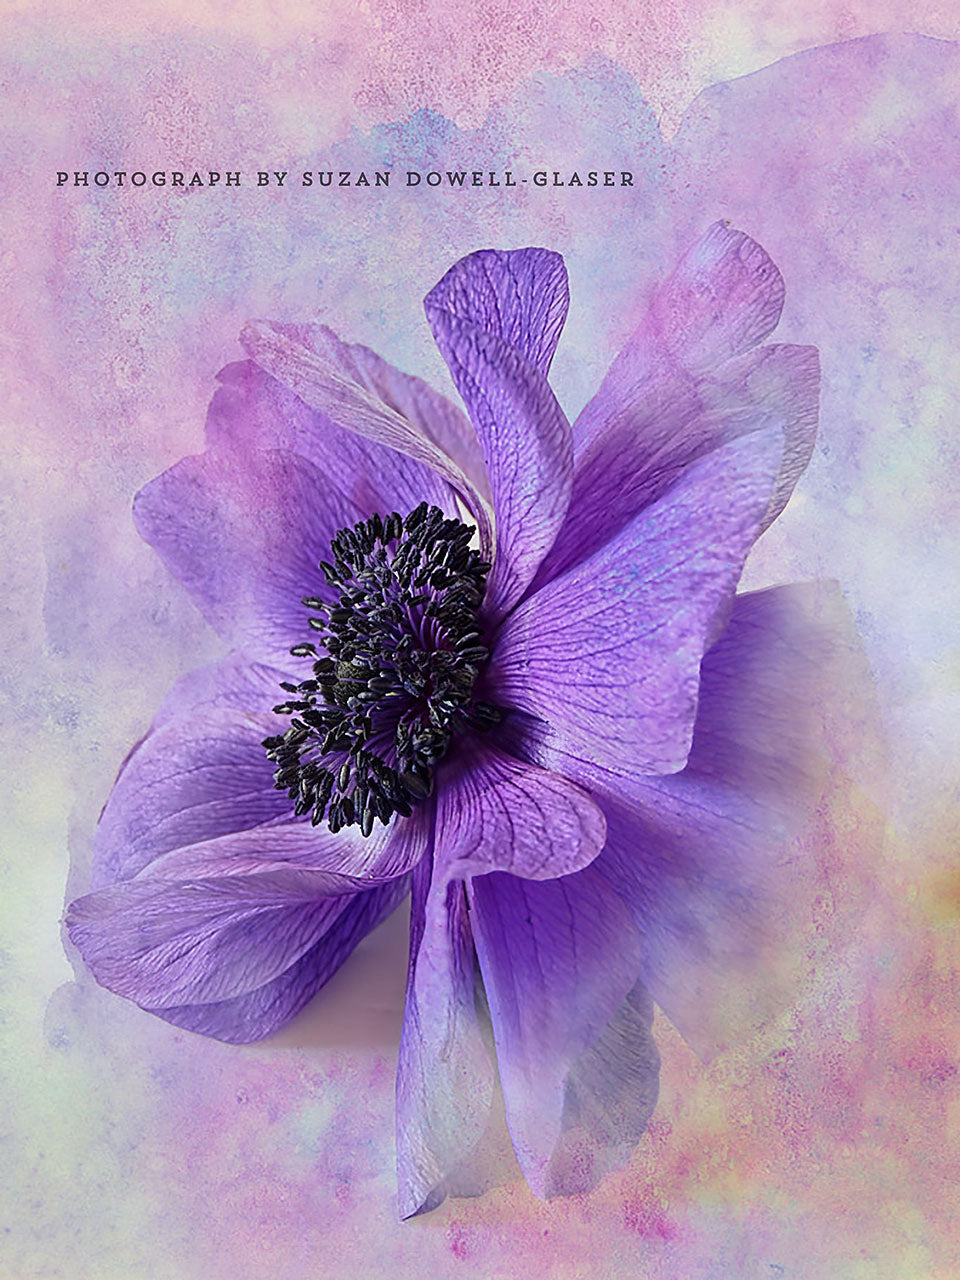 Anemone photograph by Suzan Dowell-Glaser with a watercolor texture by French Kiss Collections.